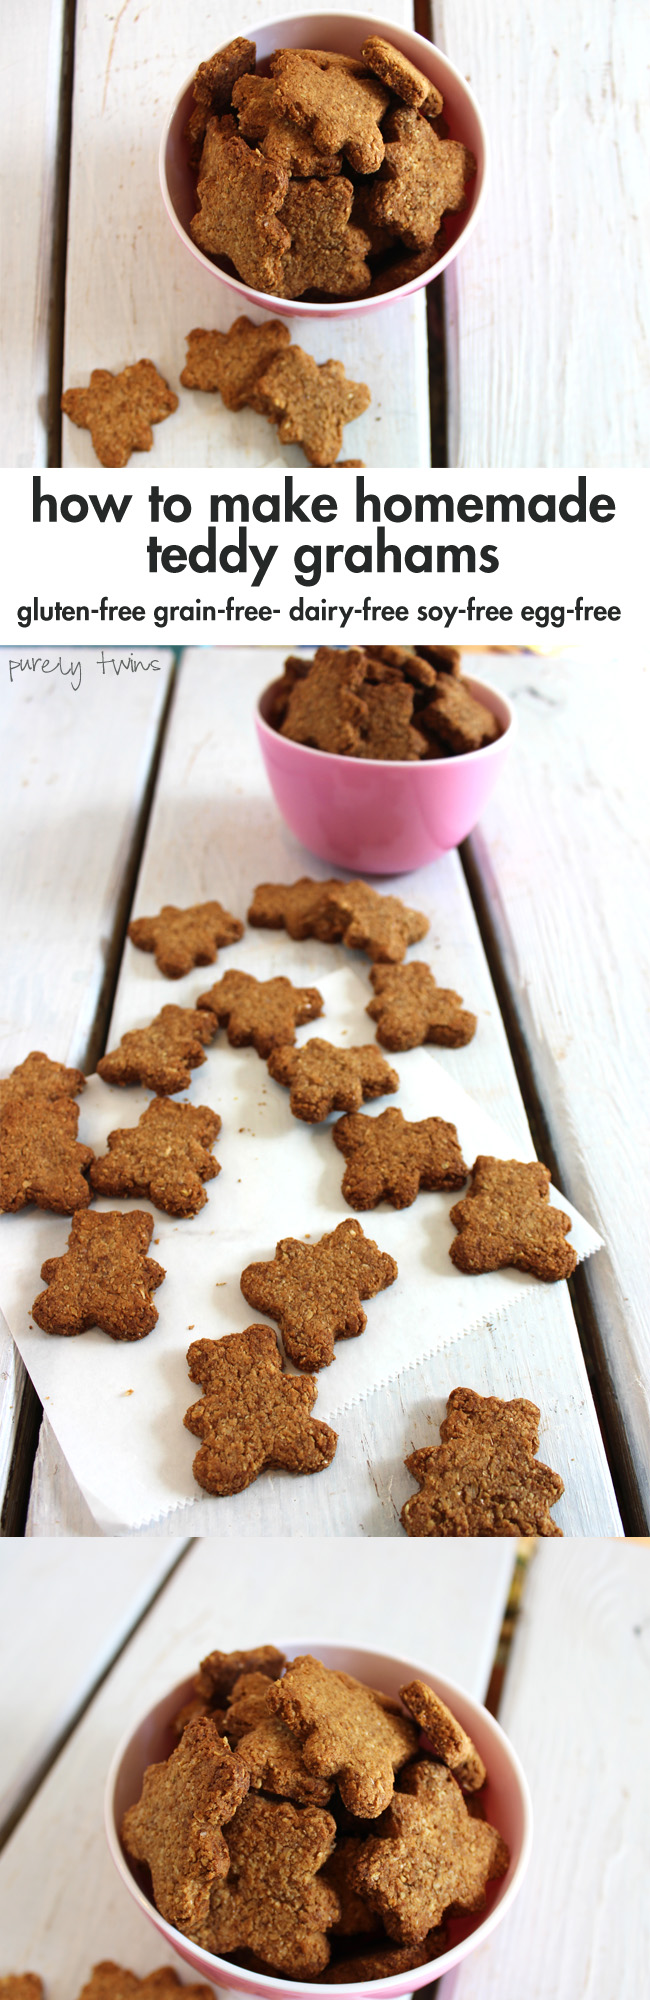 how-to-make-grain-free-homemade-gluten-free-egg-free-teddy-grahams-purelytwins